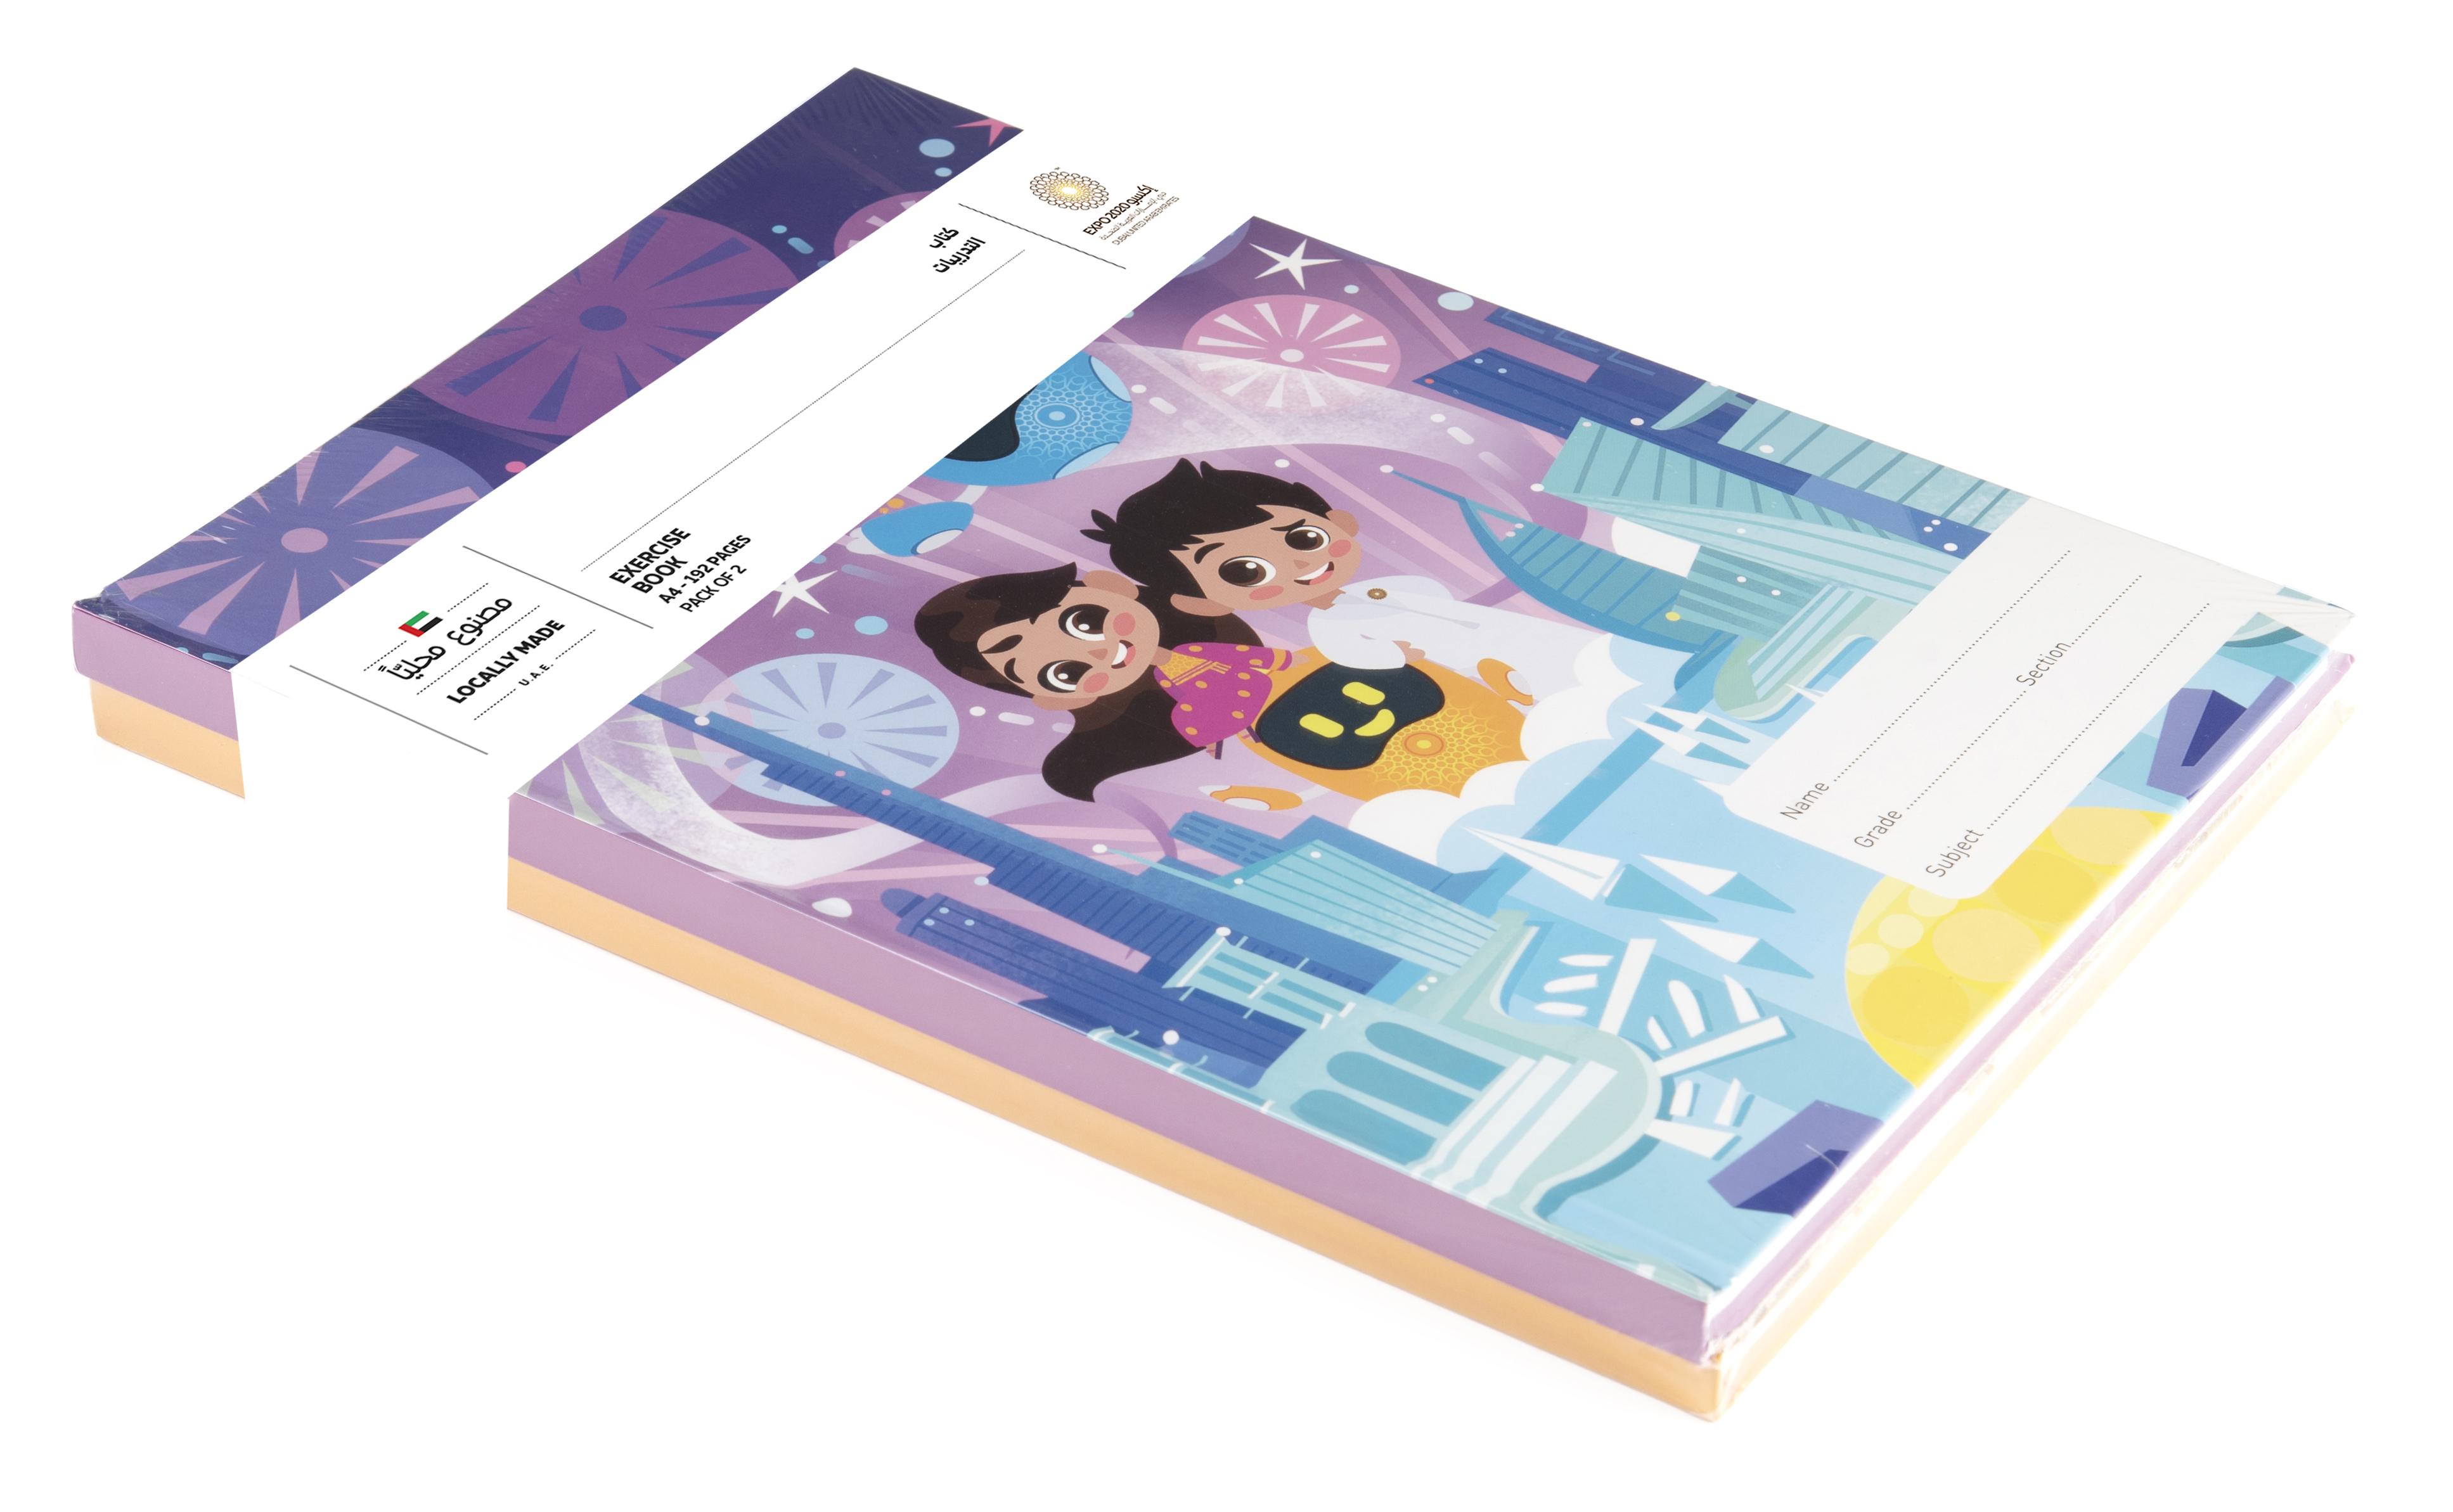 Expo 2020 Dubai Mascots  A4 Hardcase Exercise Books Pack of 2 - 192 Pages